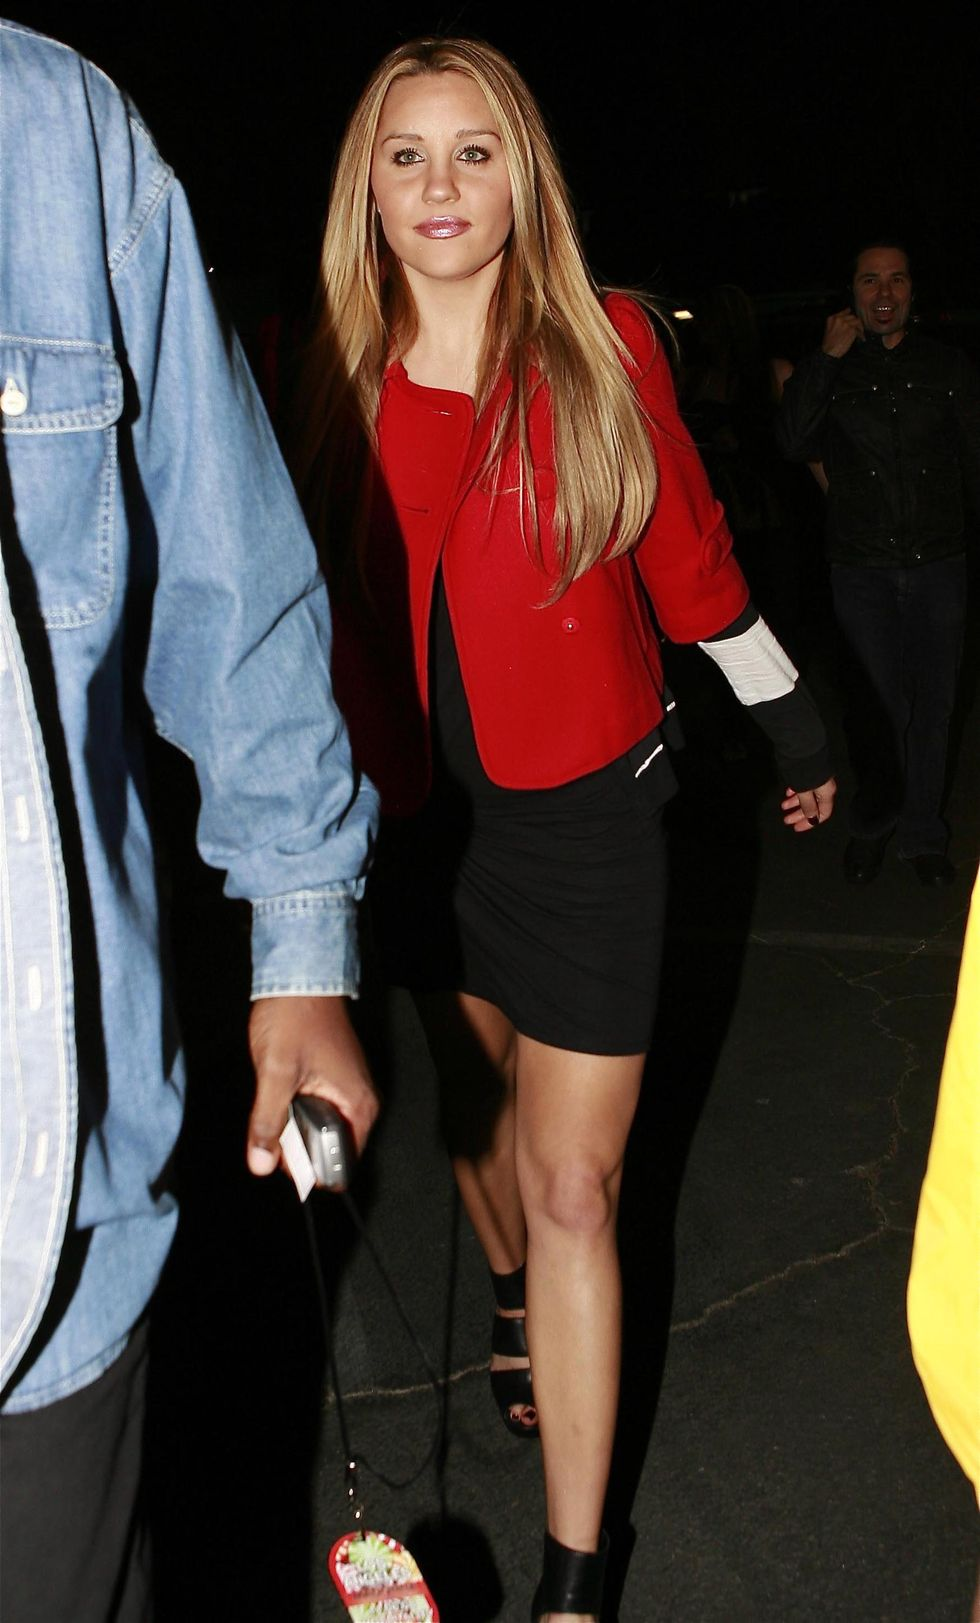 amanda-bynes-leggy-at-madonna-concert-in-los-angeles-01